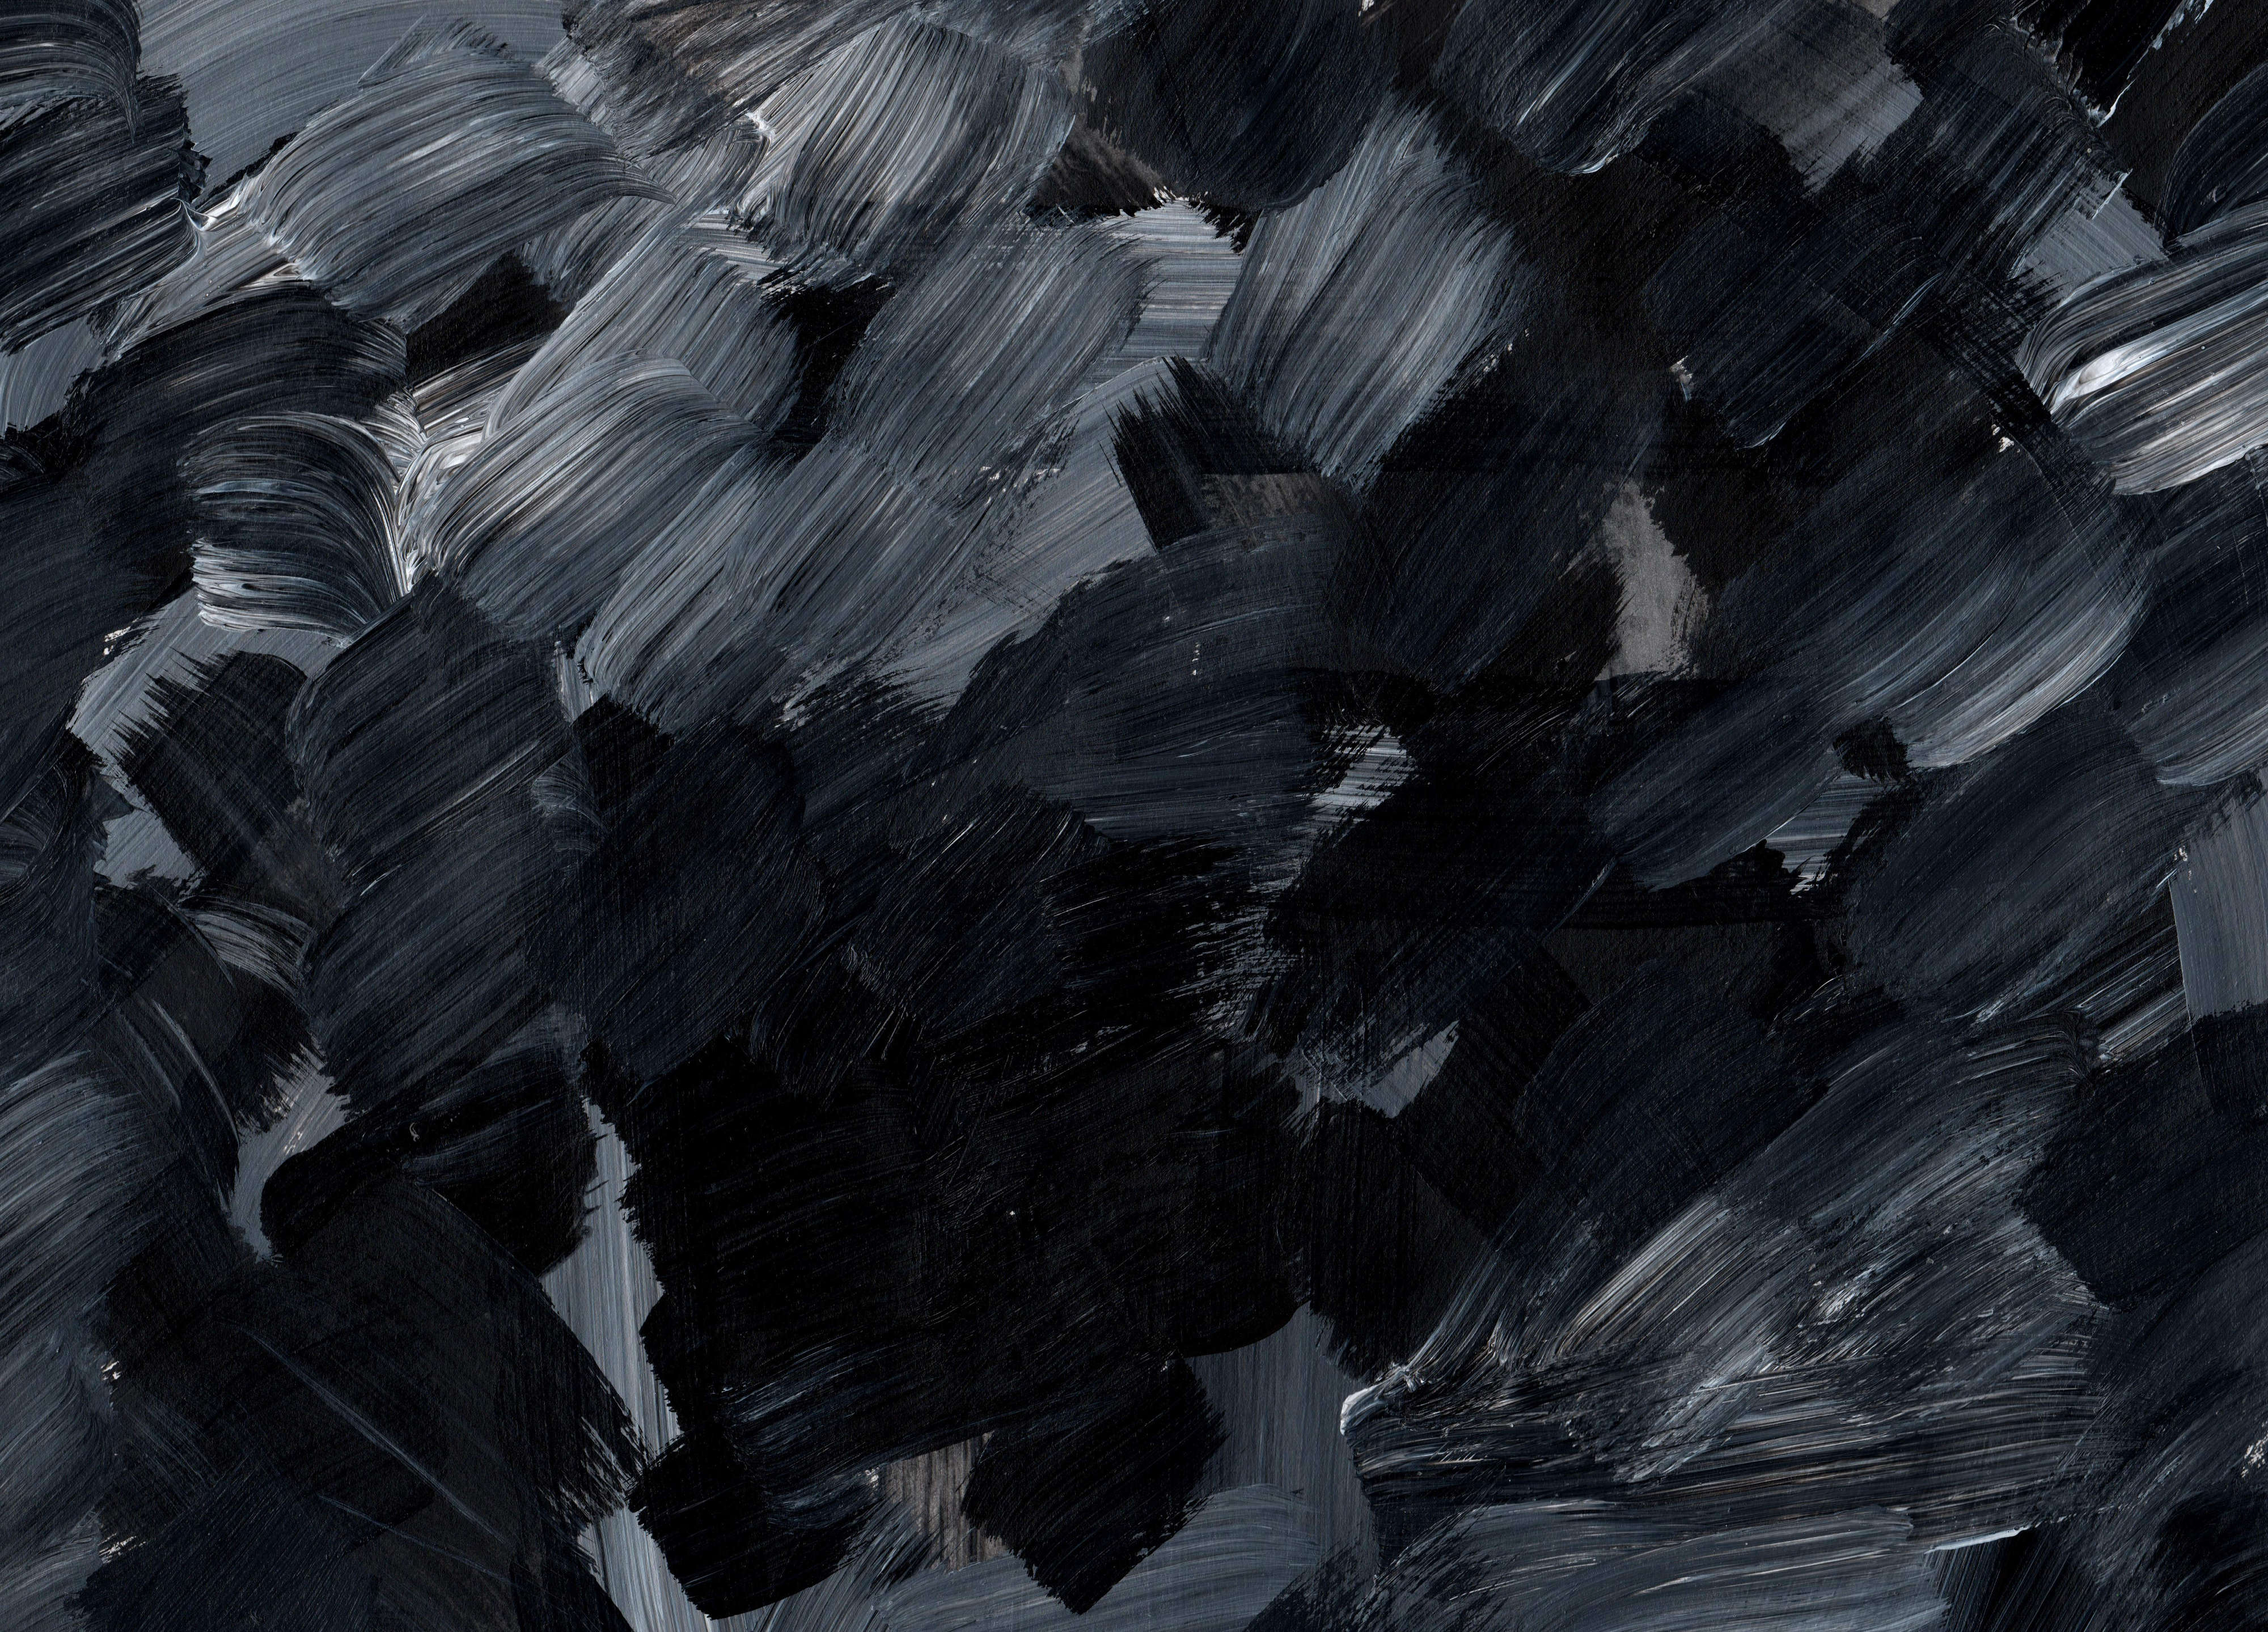 4 Paint Texture Black and White Texture (JPG) | OnlyGFX.com